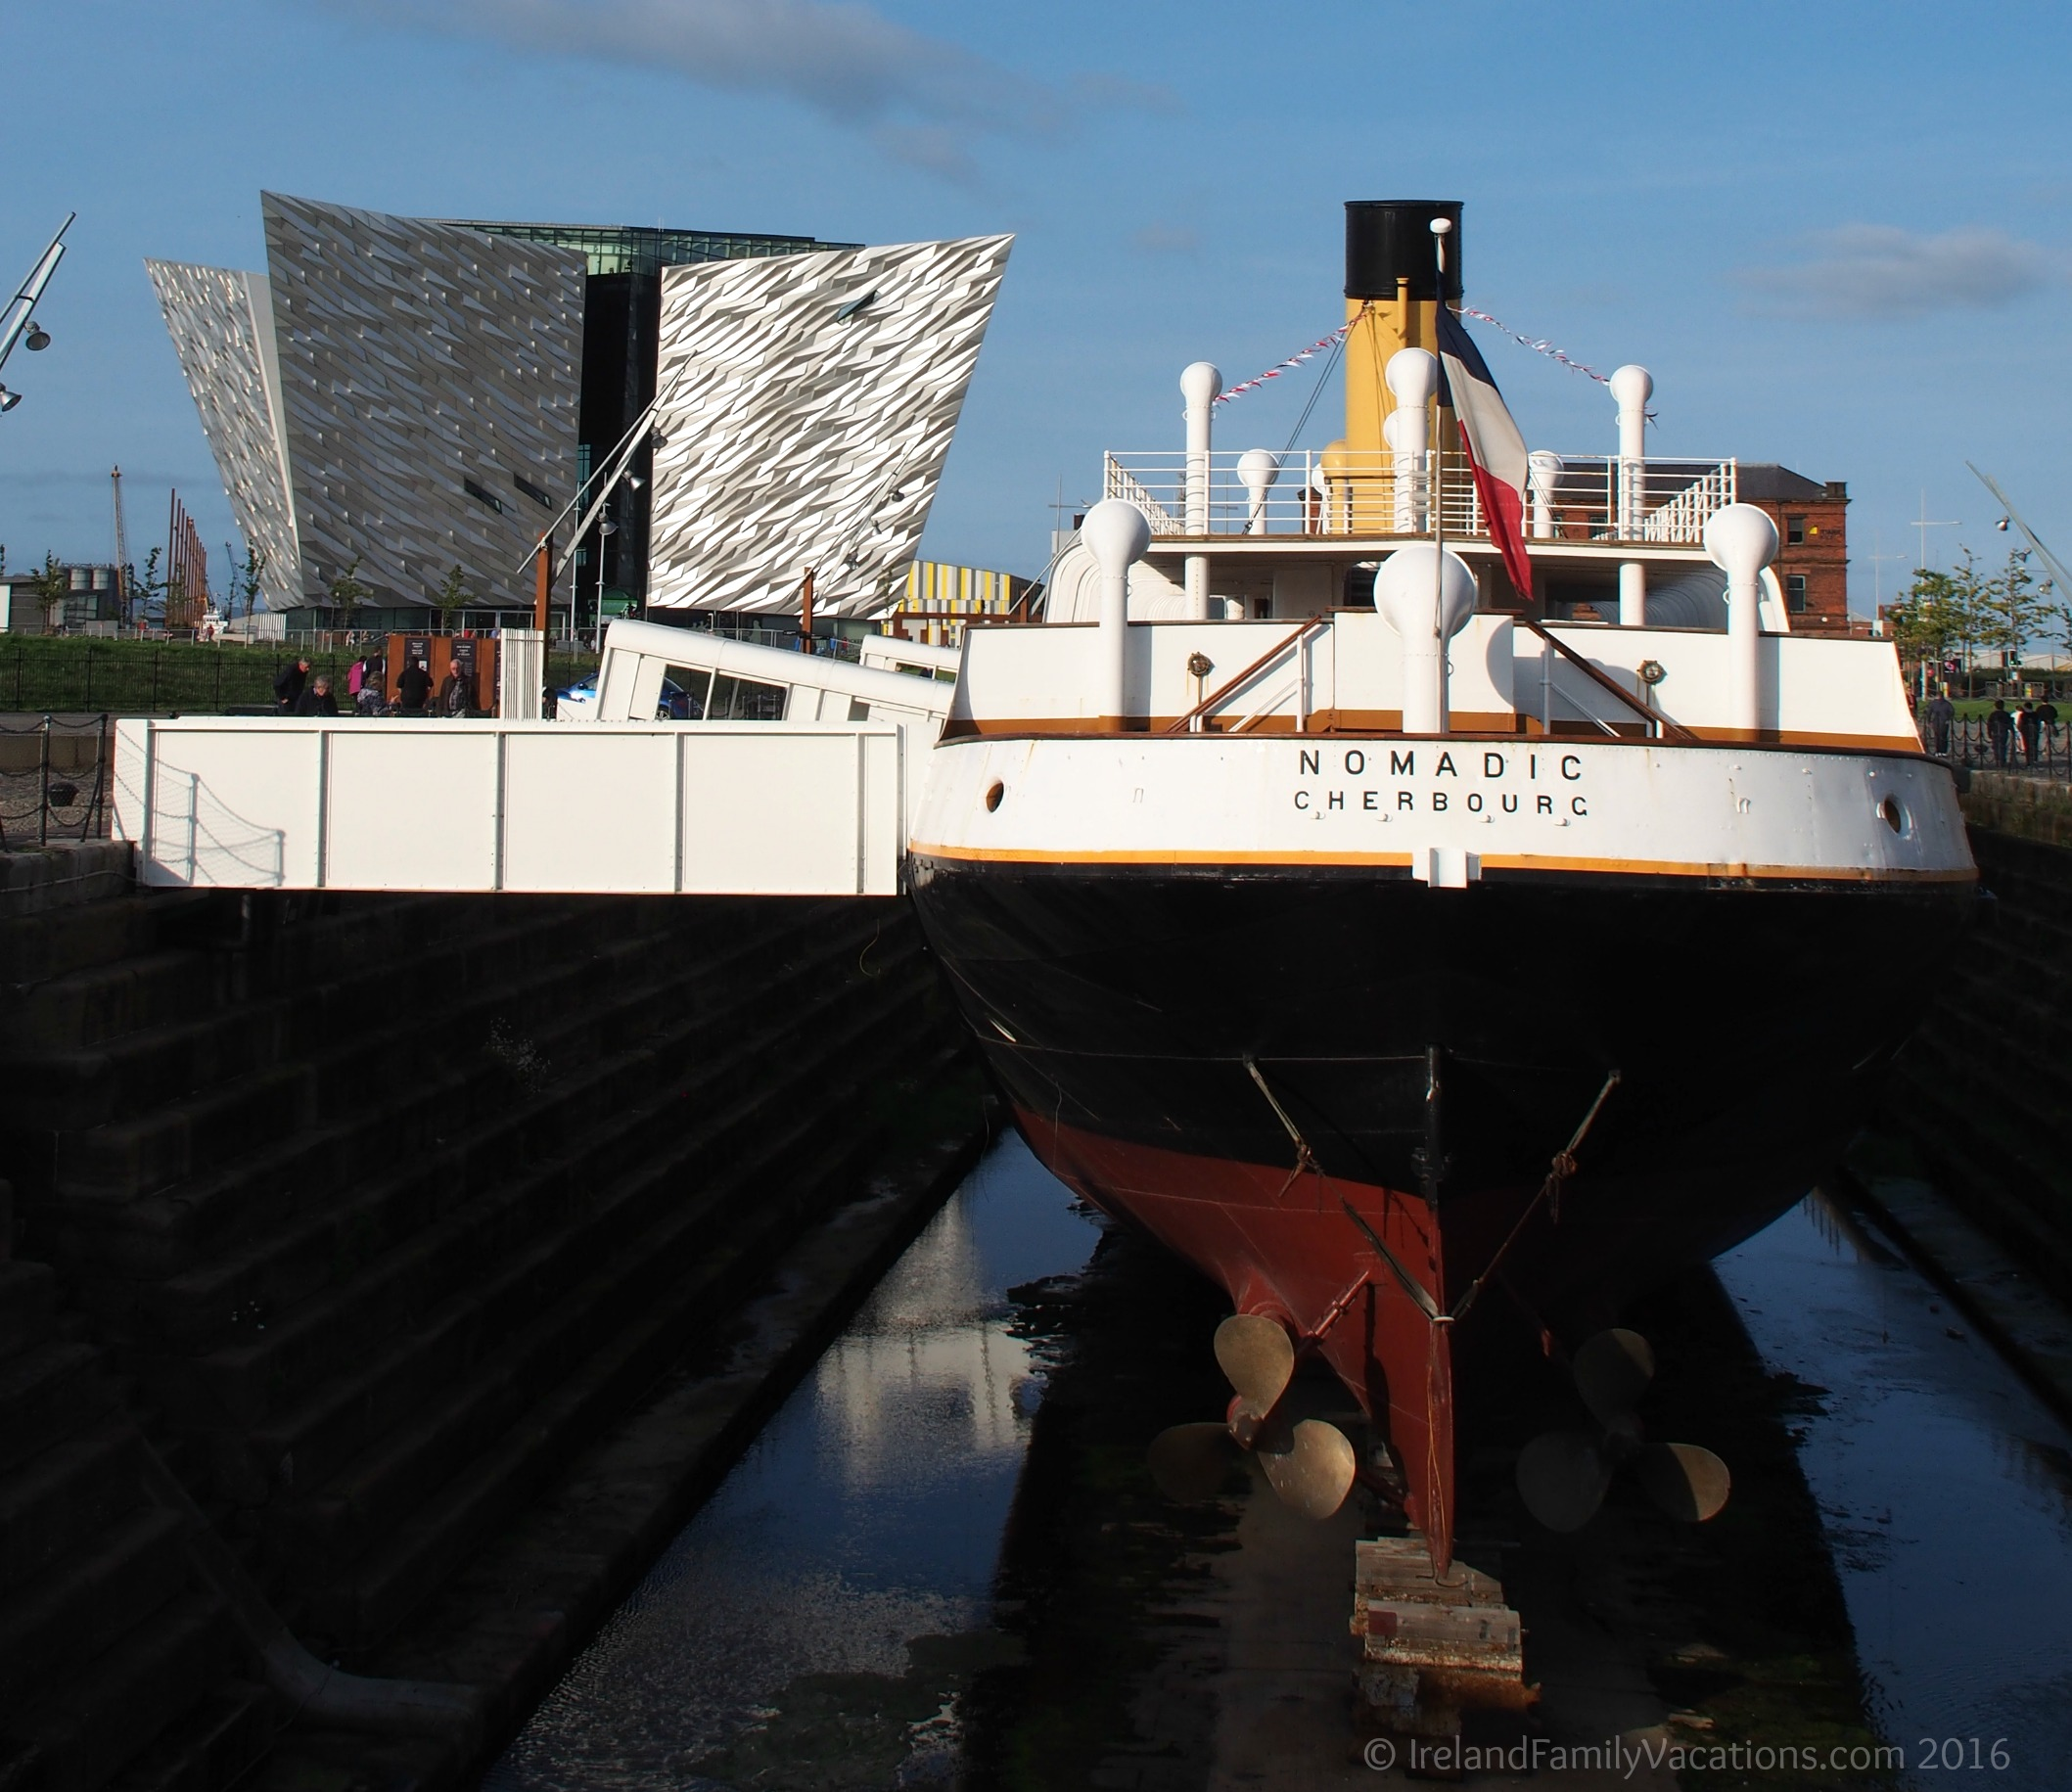 Ss nomadic and titanic belfast